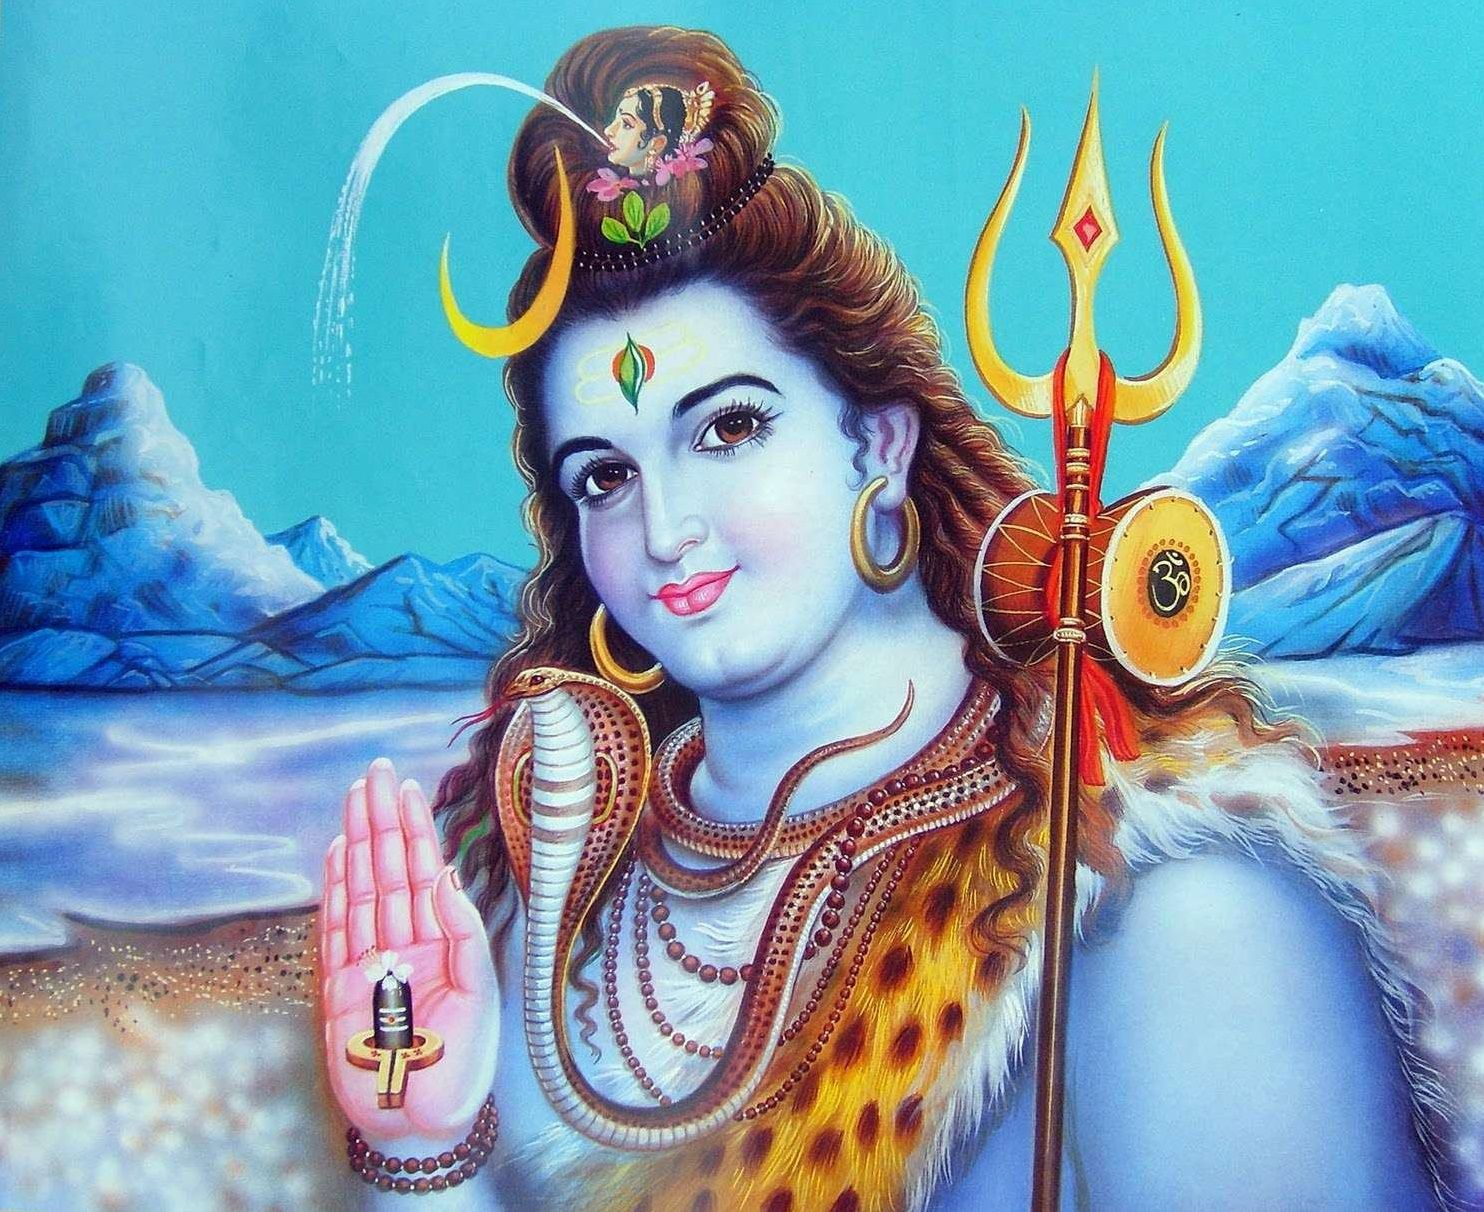 Lord Shiva Desktop Wallpapers Hd: Best 3,487+ {God HD Images} Hindu God Wallpapers For